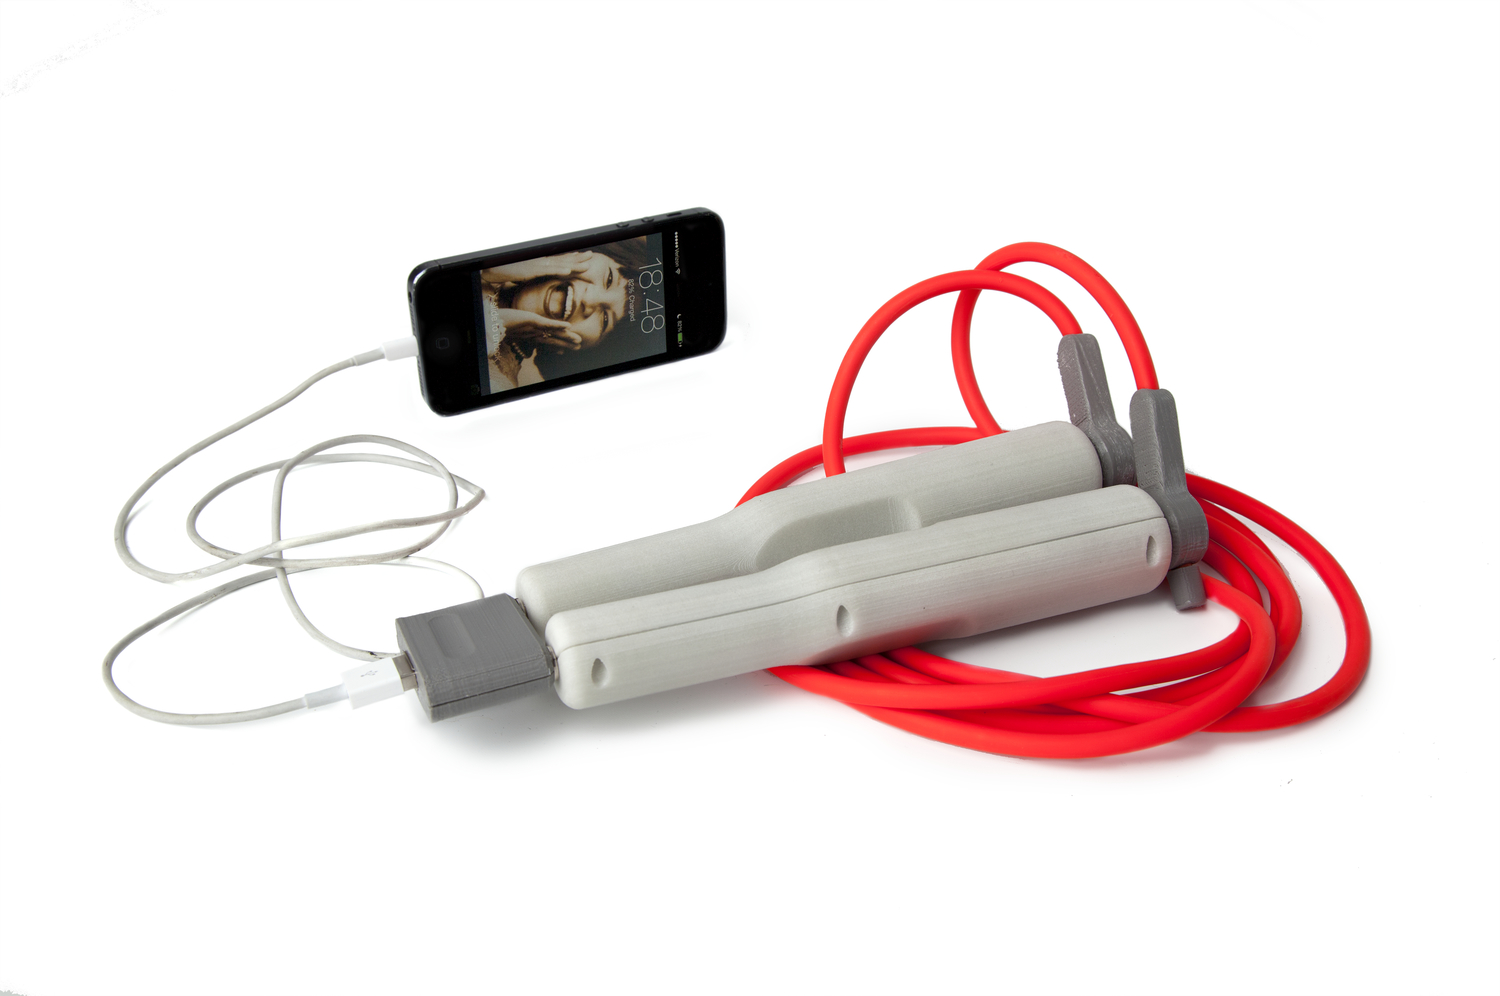 15 Minutes Of Play With PULSE Kinetic Jump Rope Produces Hours Of Light